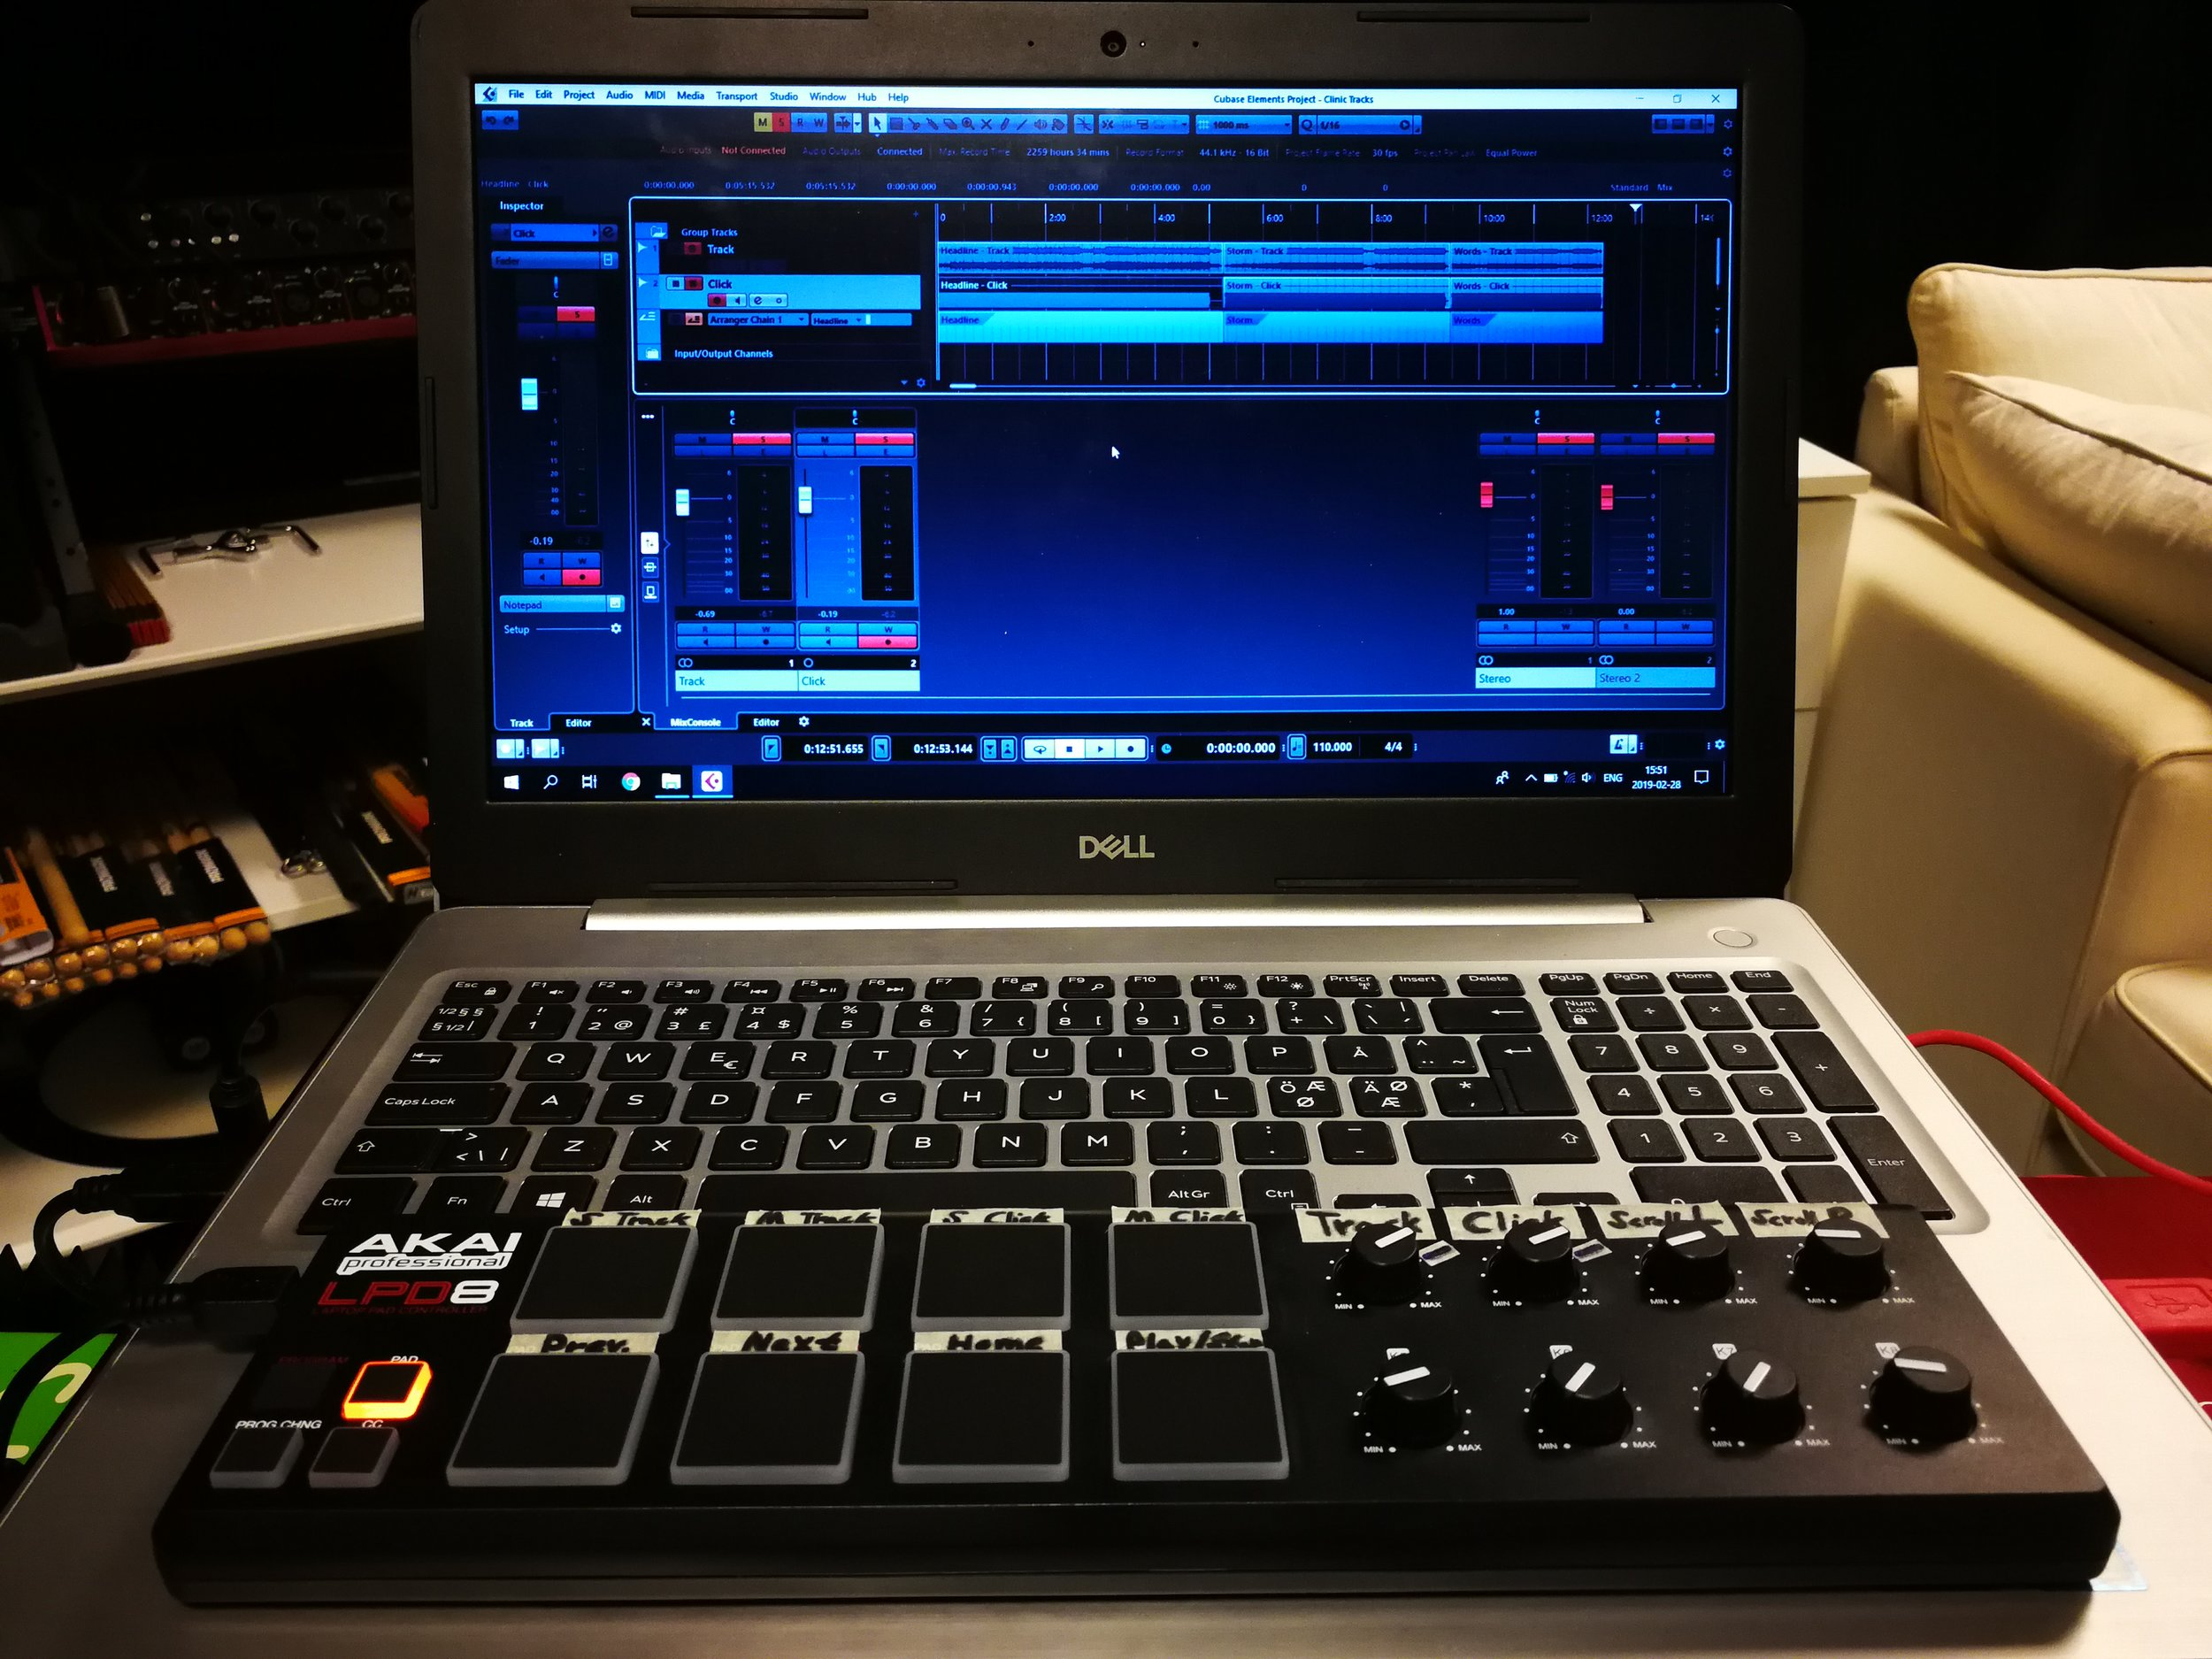 Dell Inspiron 15 laptop, Cubase 9.5 Elements and a Akai LPD8 controller for track navigation, volume control, etc.